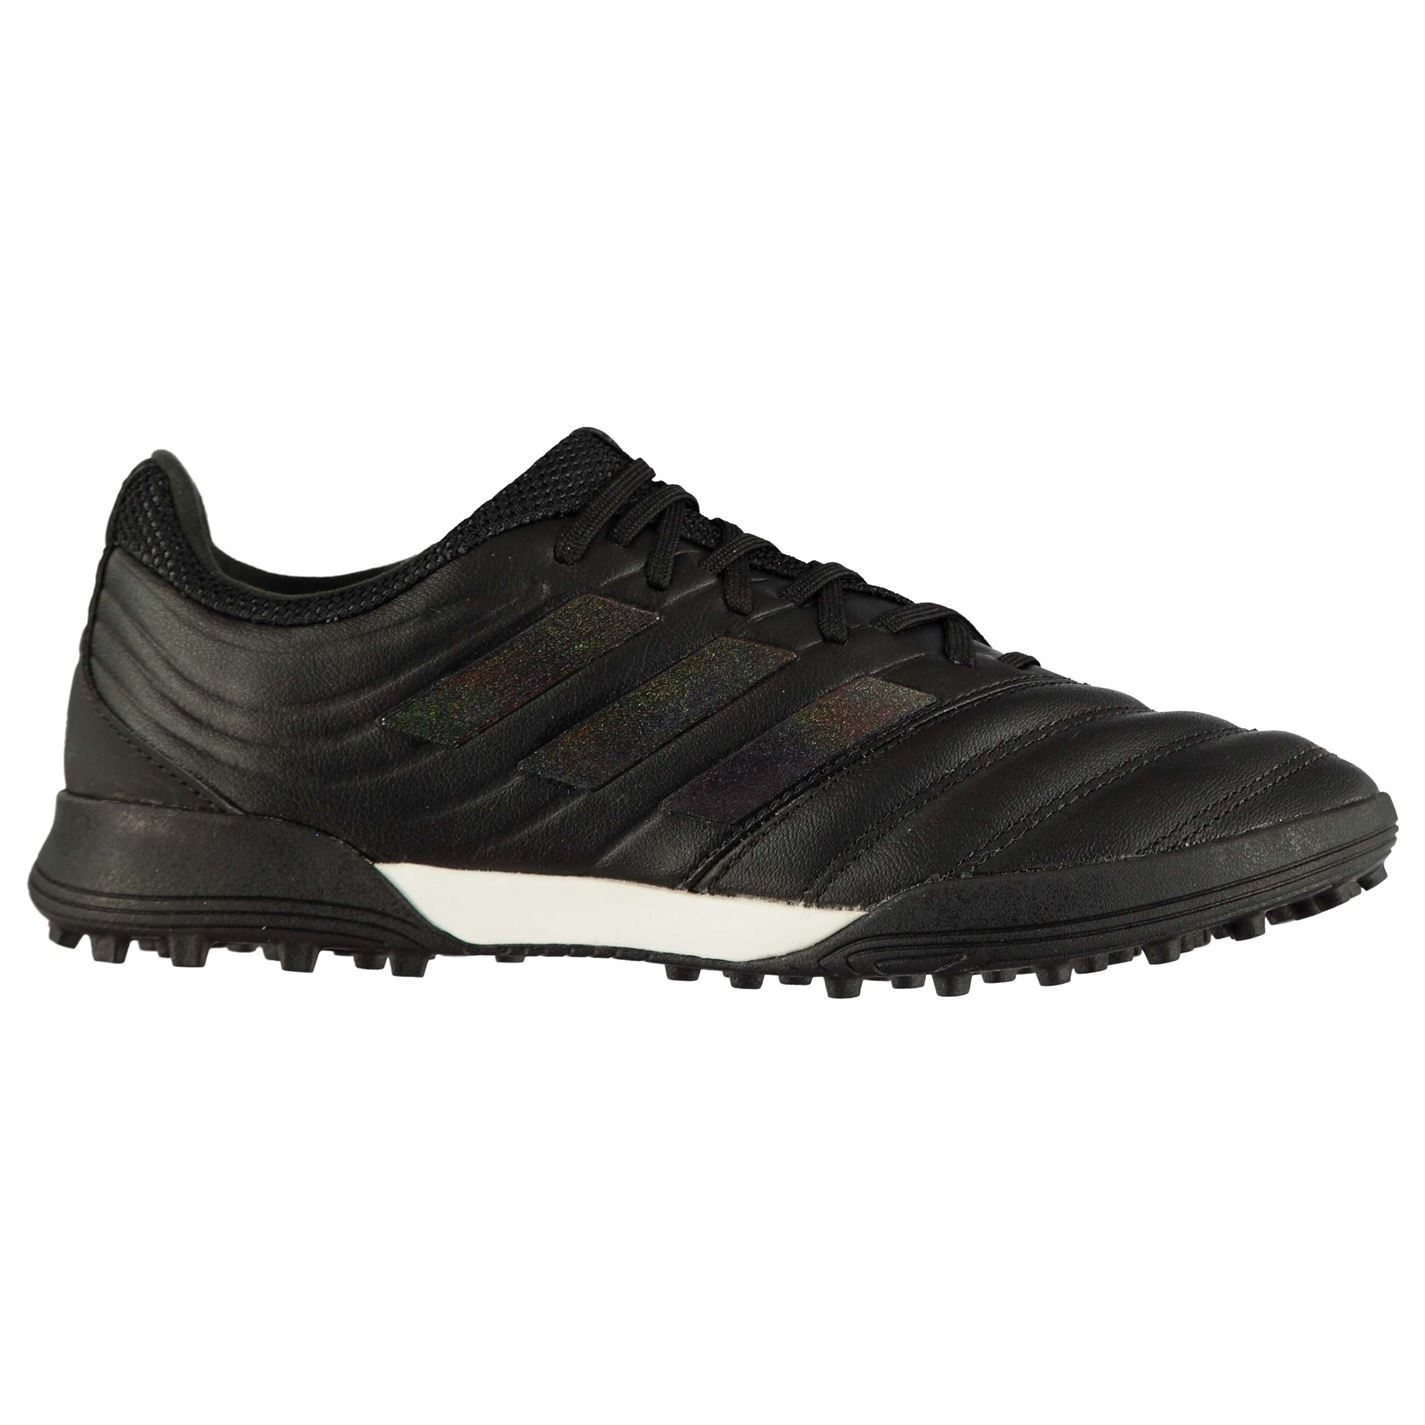 Adidas-Copa-19-3-Astro-Turf-Football-Chaussures-Homme-Football-Entrainement-Baskets miniature 12